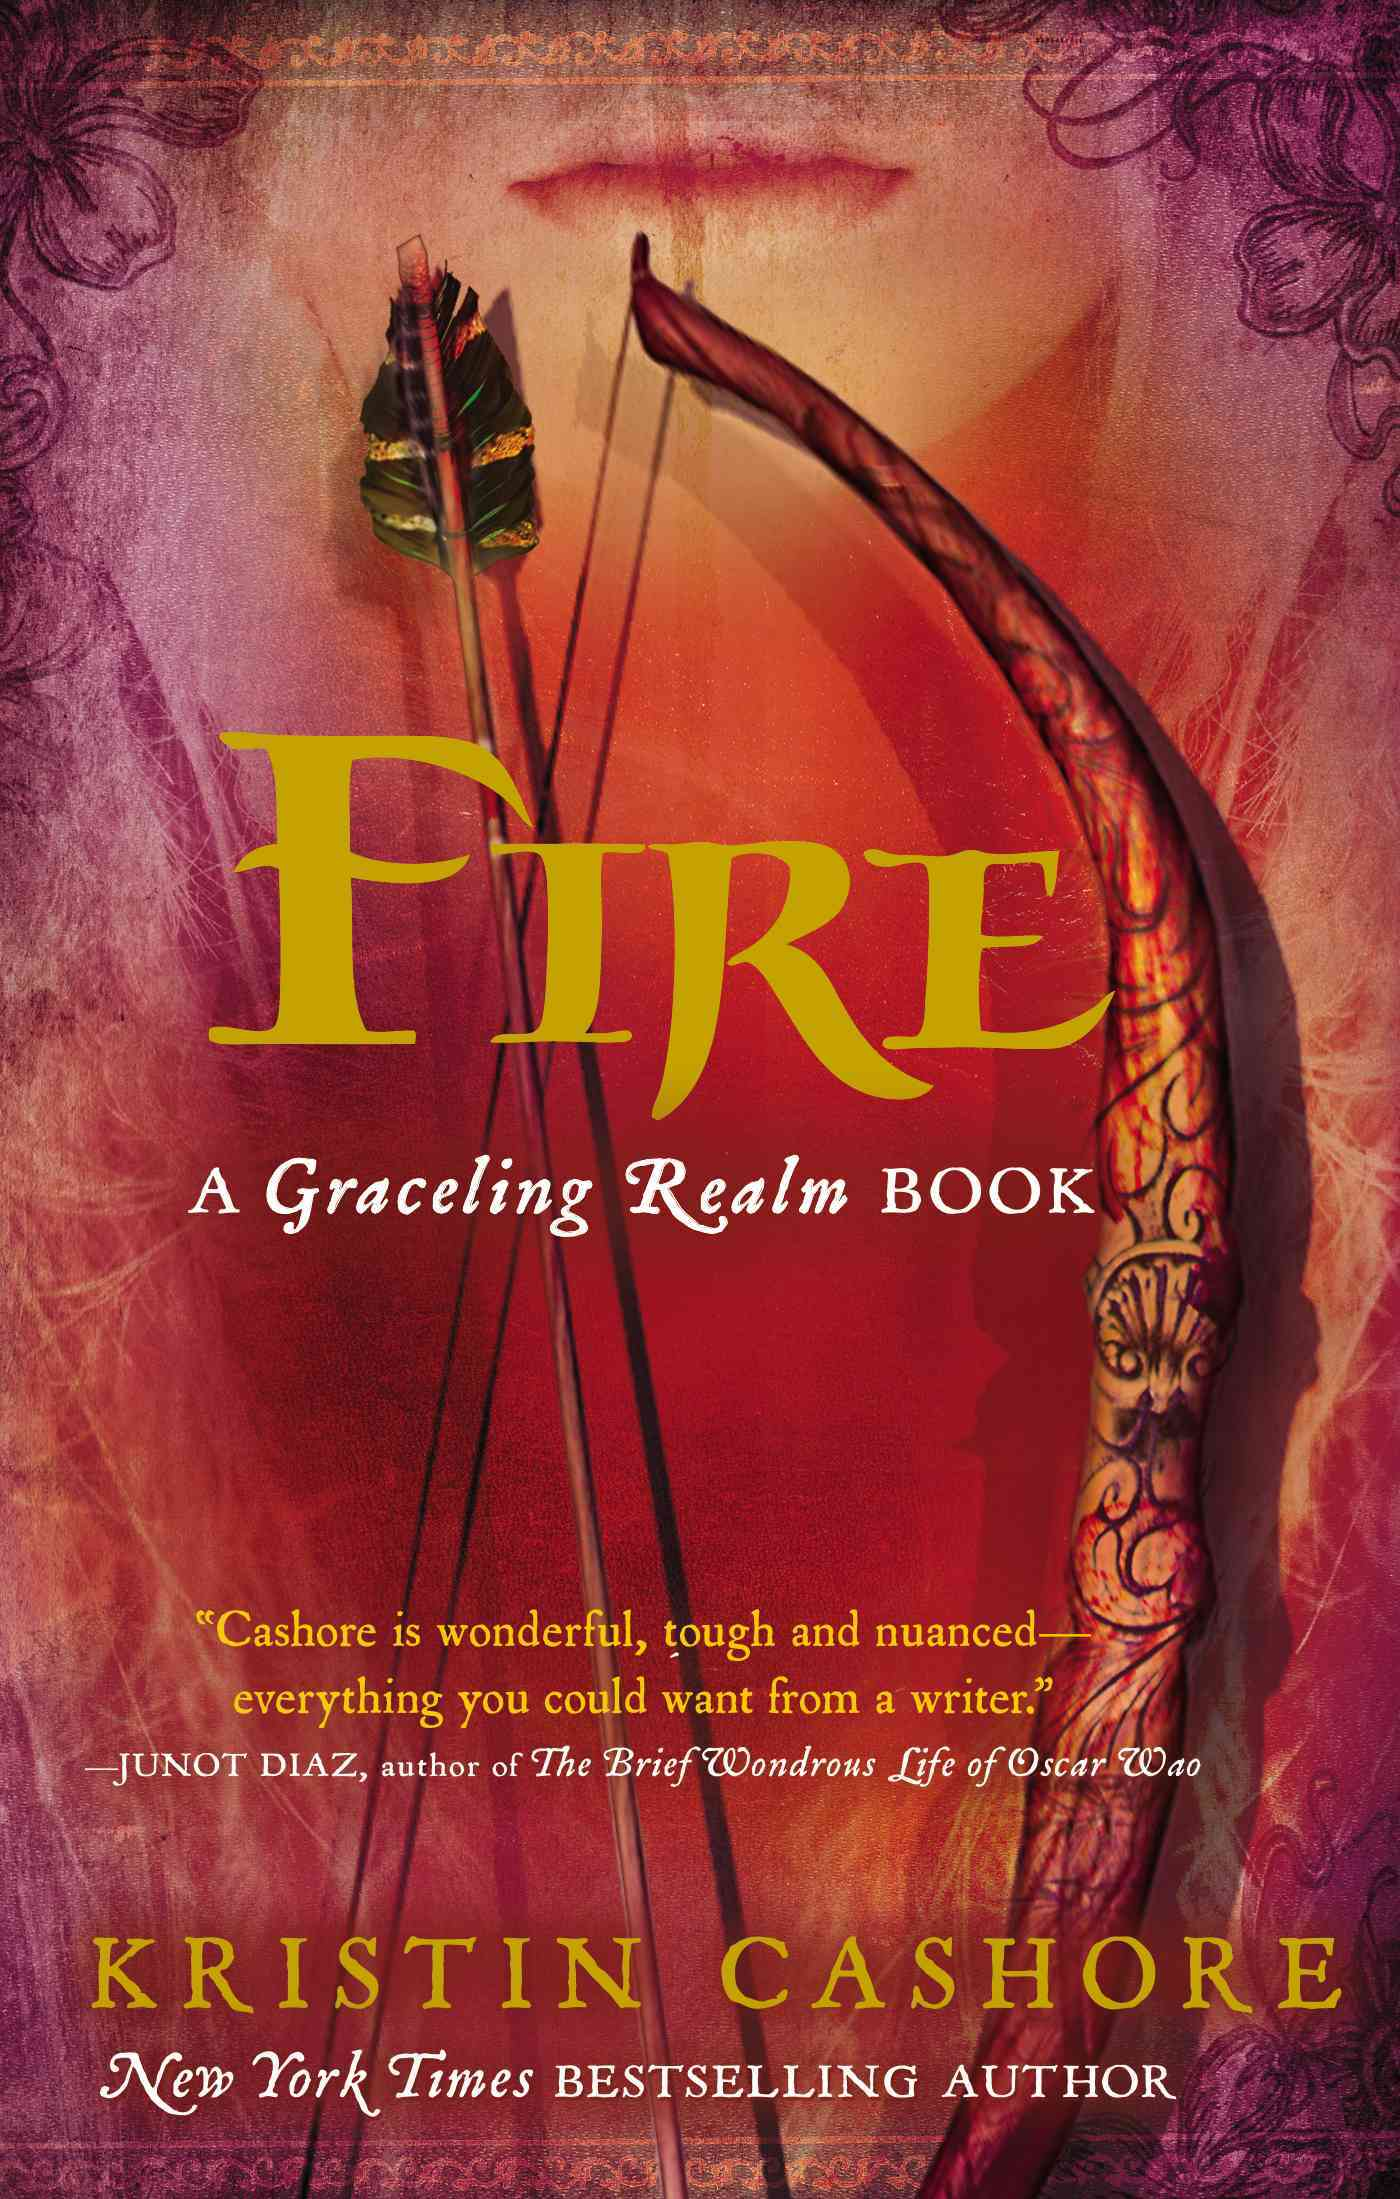 Fire (Paperback)